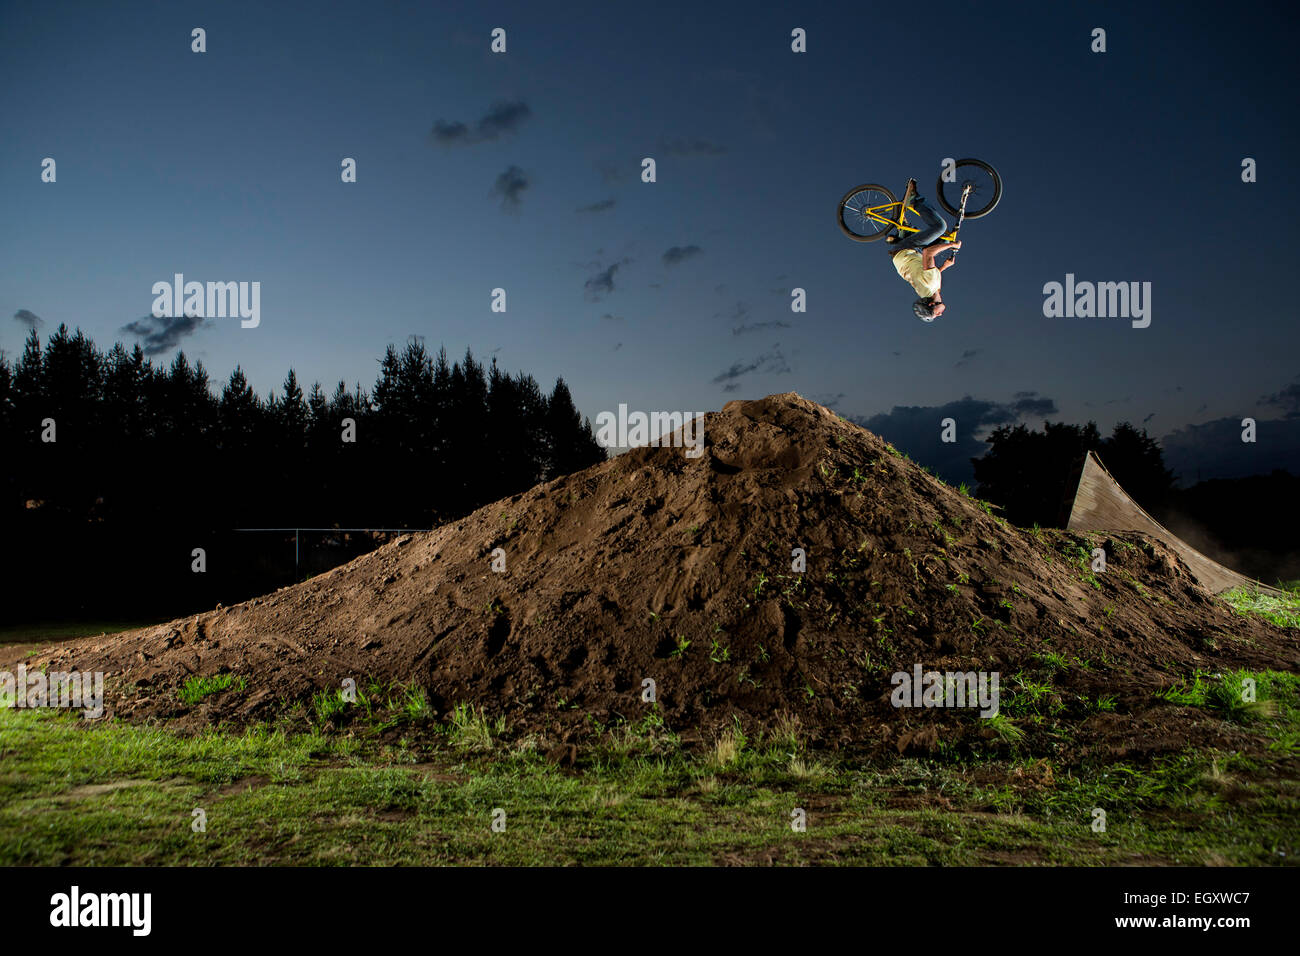 A young man performs dirt jumps near Toluca, Mexico - Stock Image